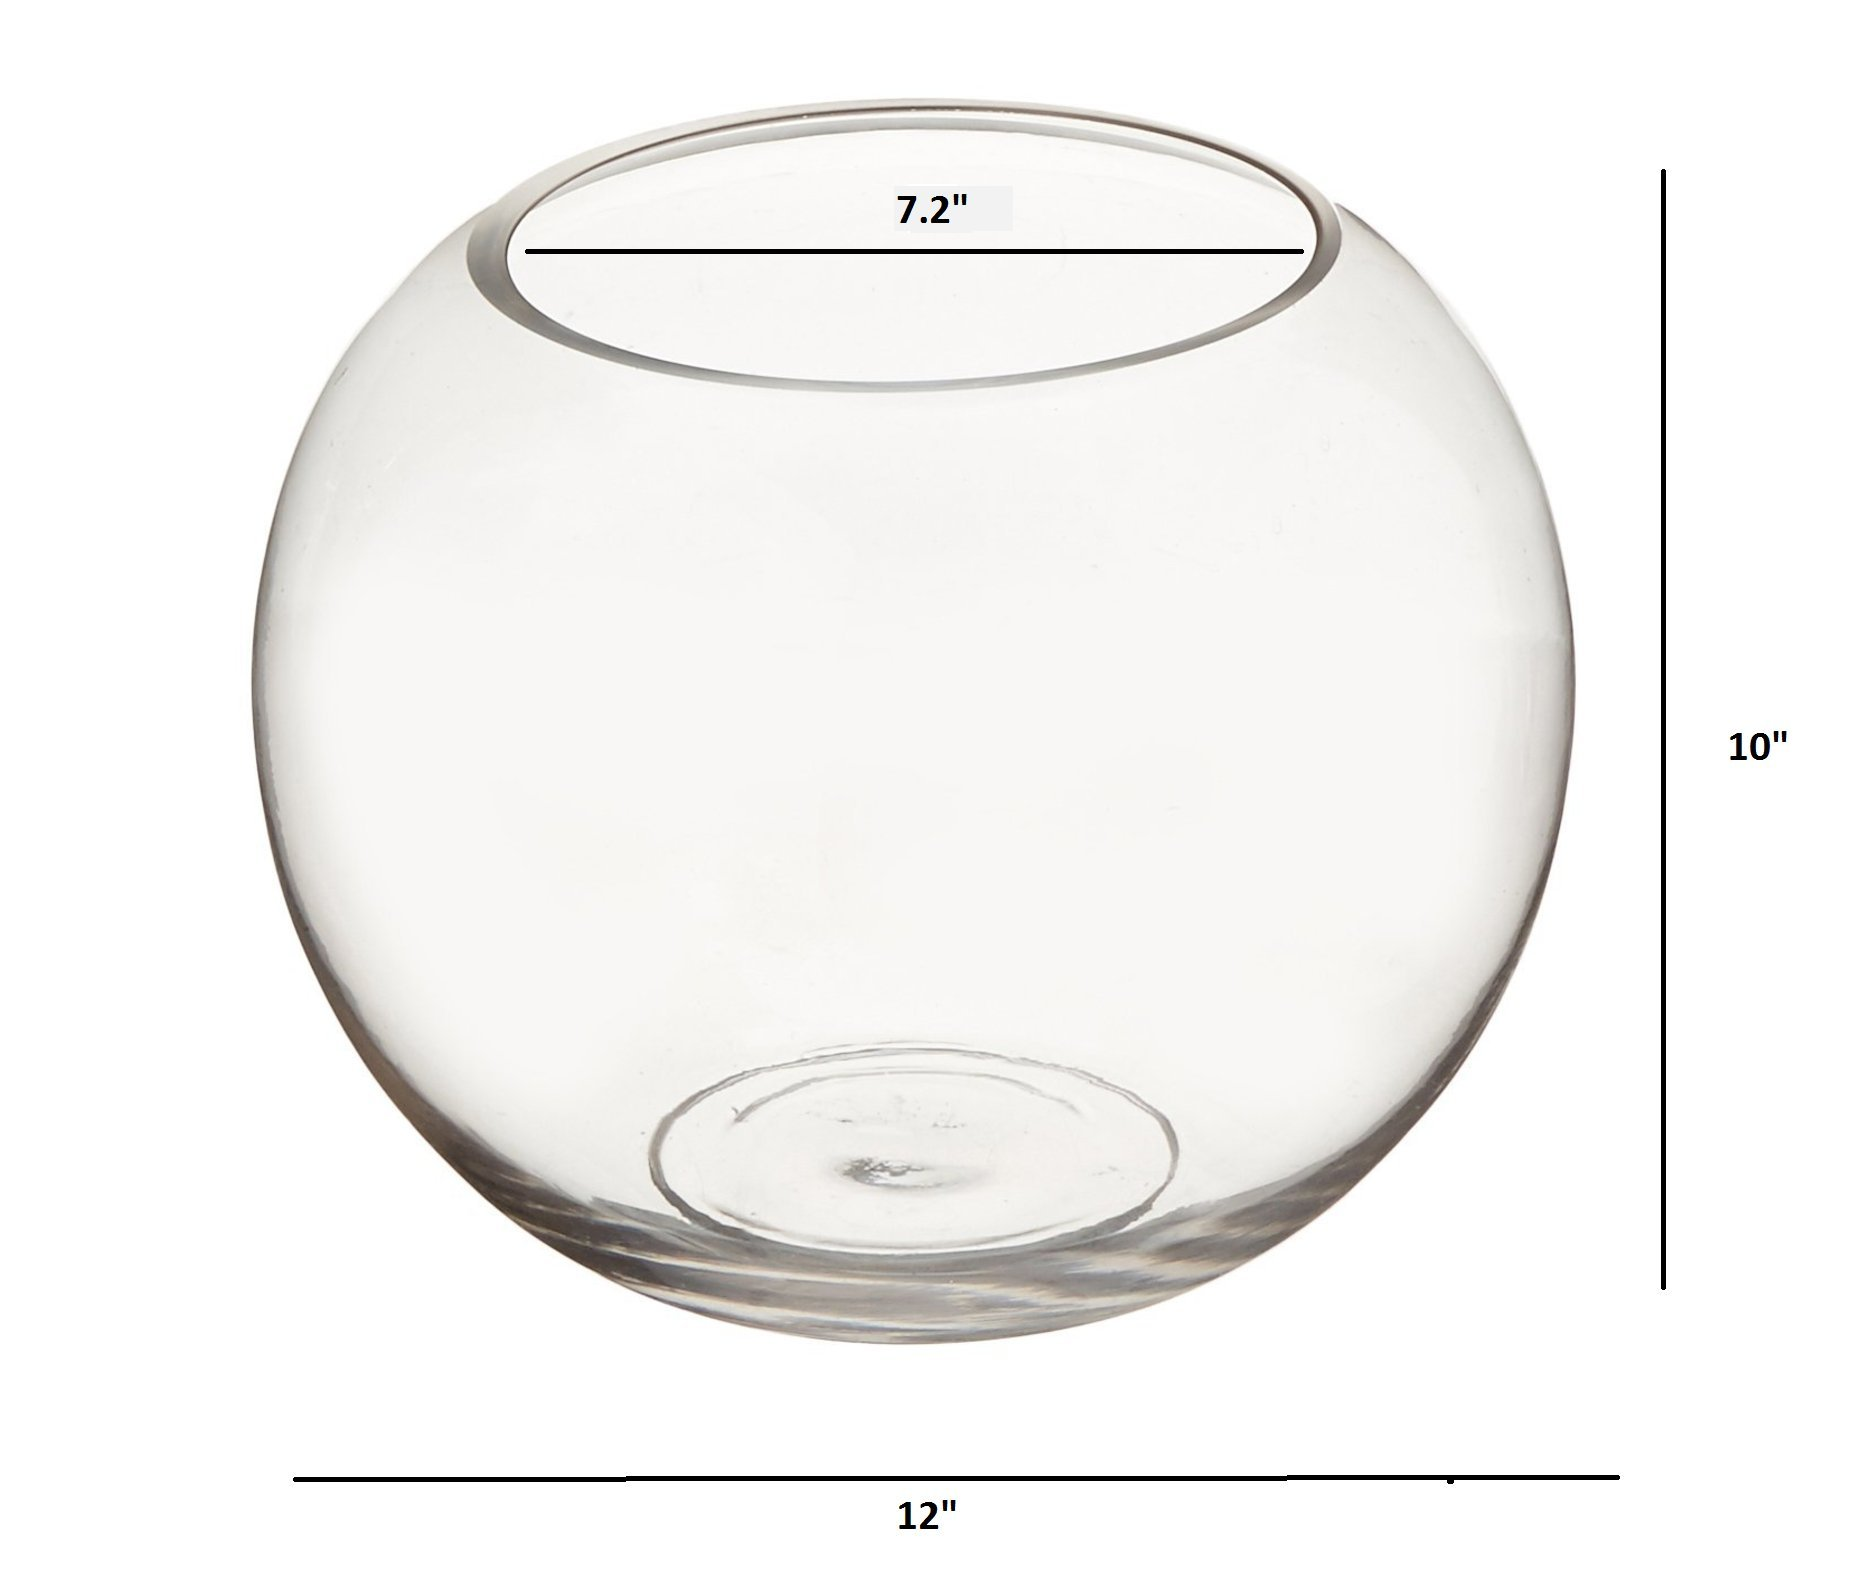 Candles4Less - 12 x 10 Inch Large Clear Glass Bubble Bowl Vases (Set of 2) by Candles4Less